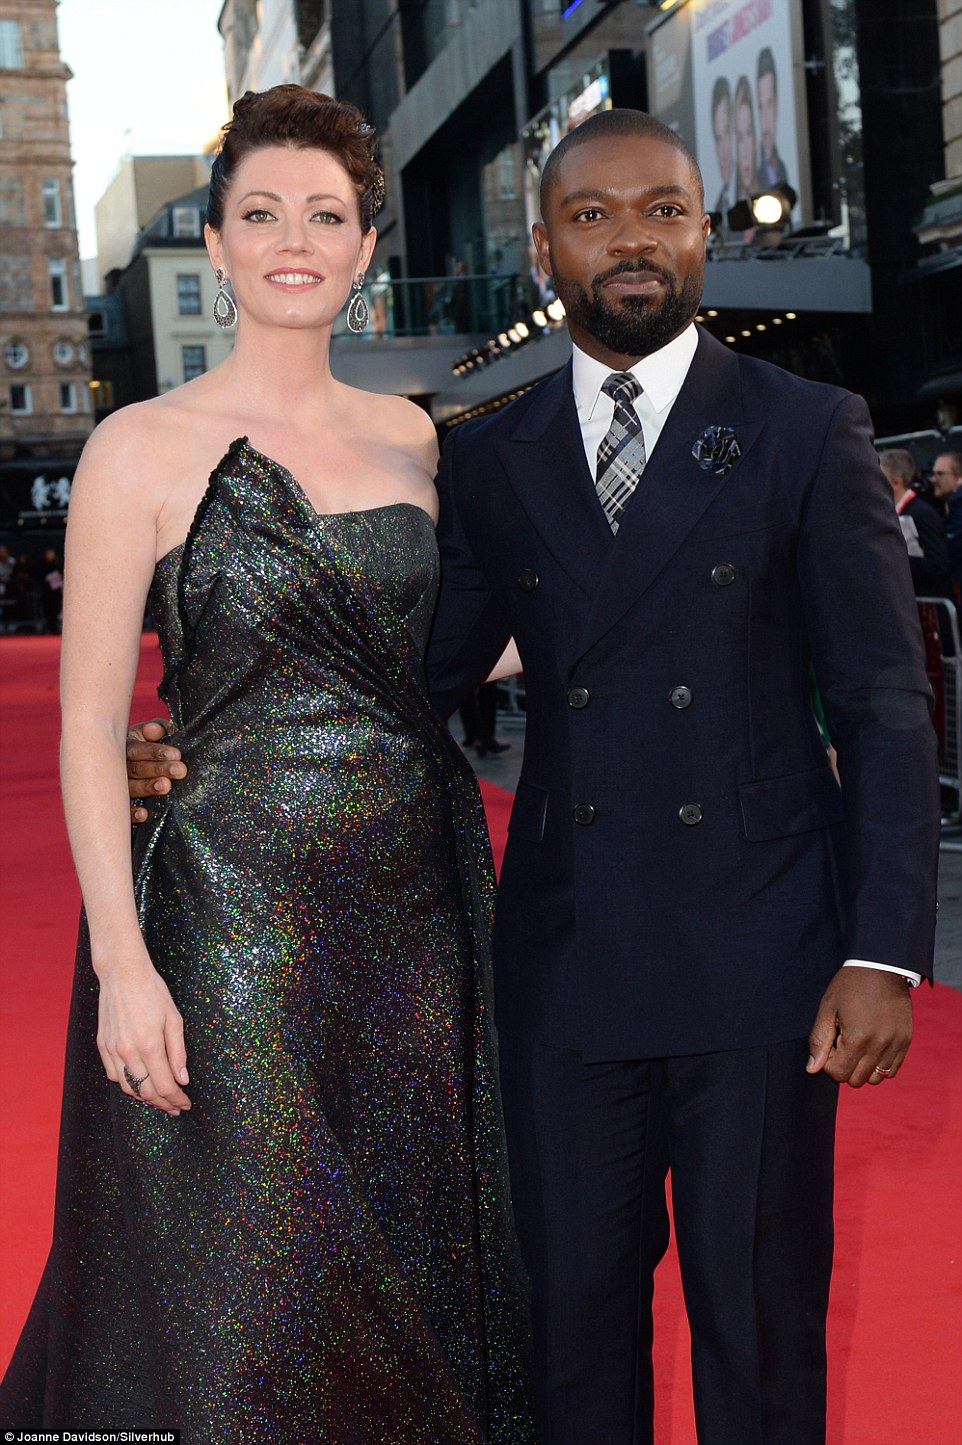 Date night: Leading man David Oyelowo was suited and booted for the premiere, with wife Jessica on his arm